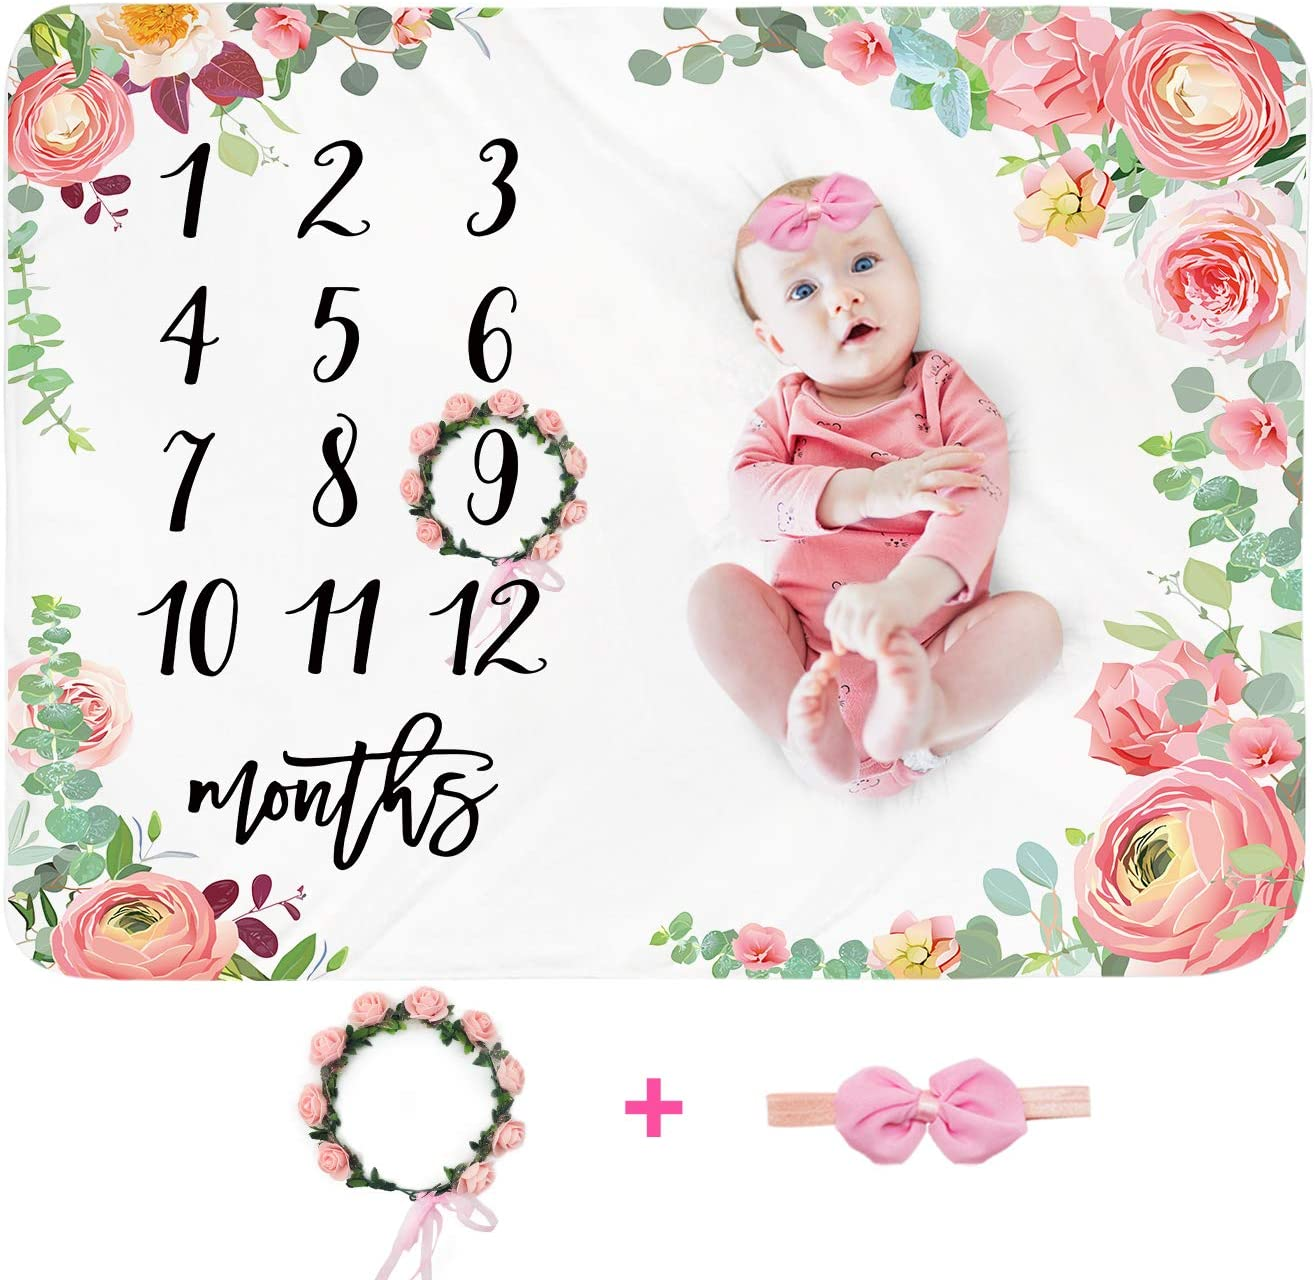 Baby Monthly Milestone Blanket Girl - Floral Newborn Month Blanket Personalized Shower Gift Soft Plush Fleece Photography Background Photo Prop Large Flower Blanket with Wreath Headband